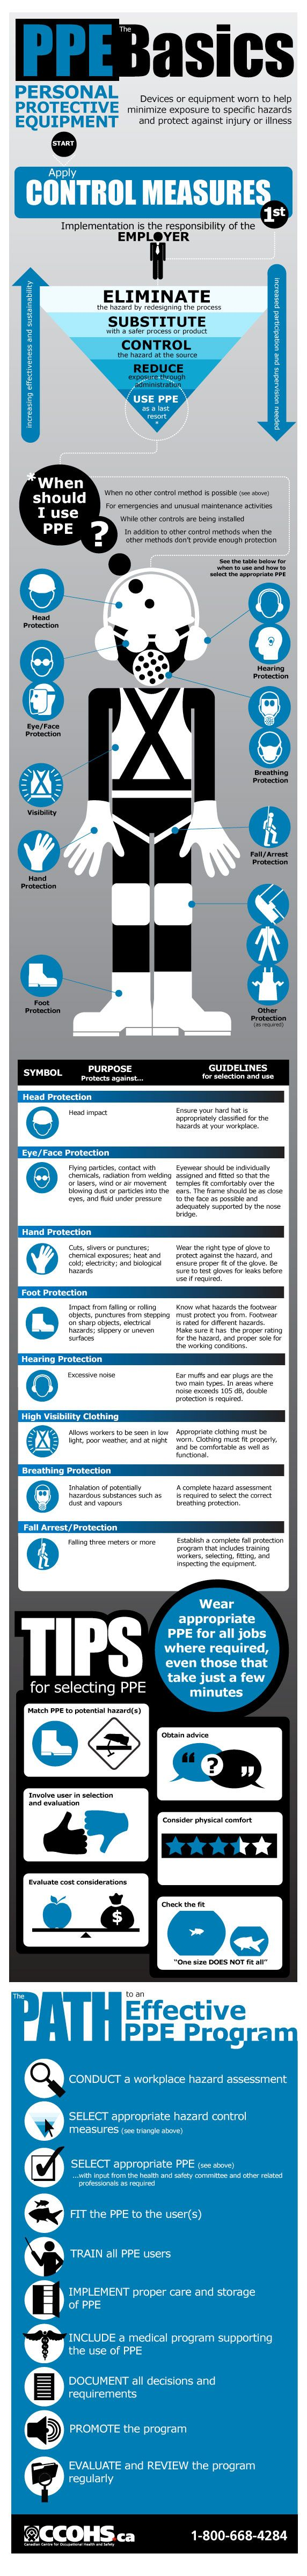 Pin by CCOHS on Health and Safety Infographics Health